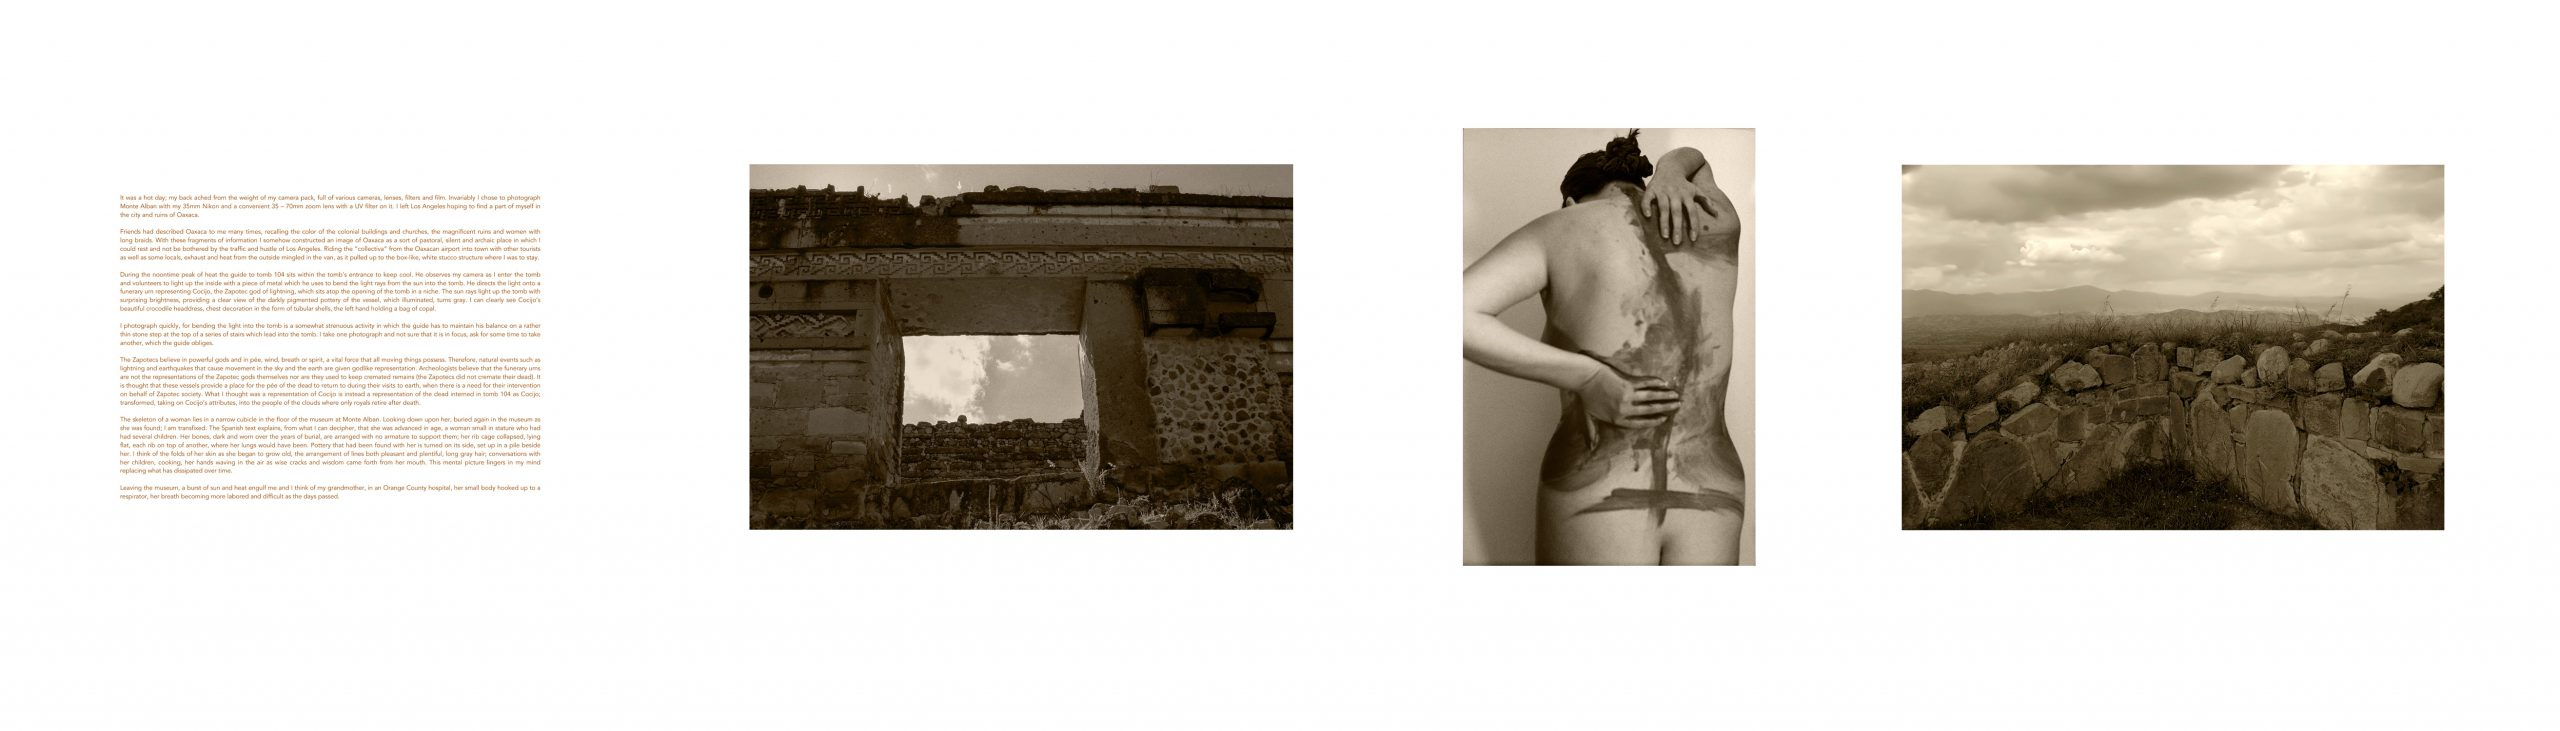 Bend Group_Text_Mitla_Selfportrati_Monte Alban